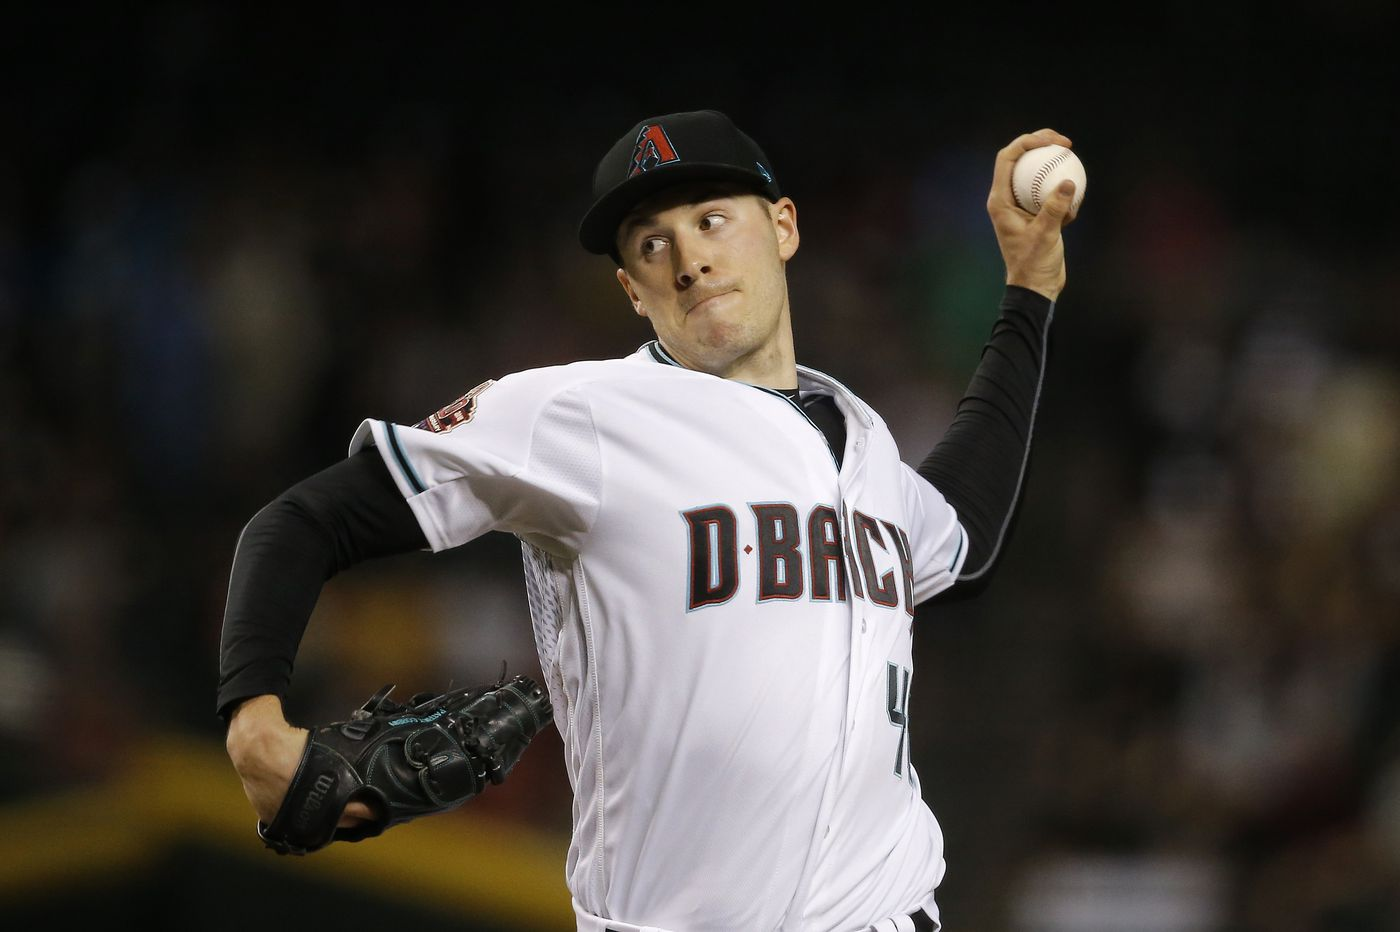 Patrick Corbin signs with the Nationals. What's next for the Phillies?